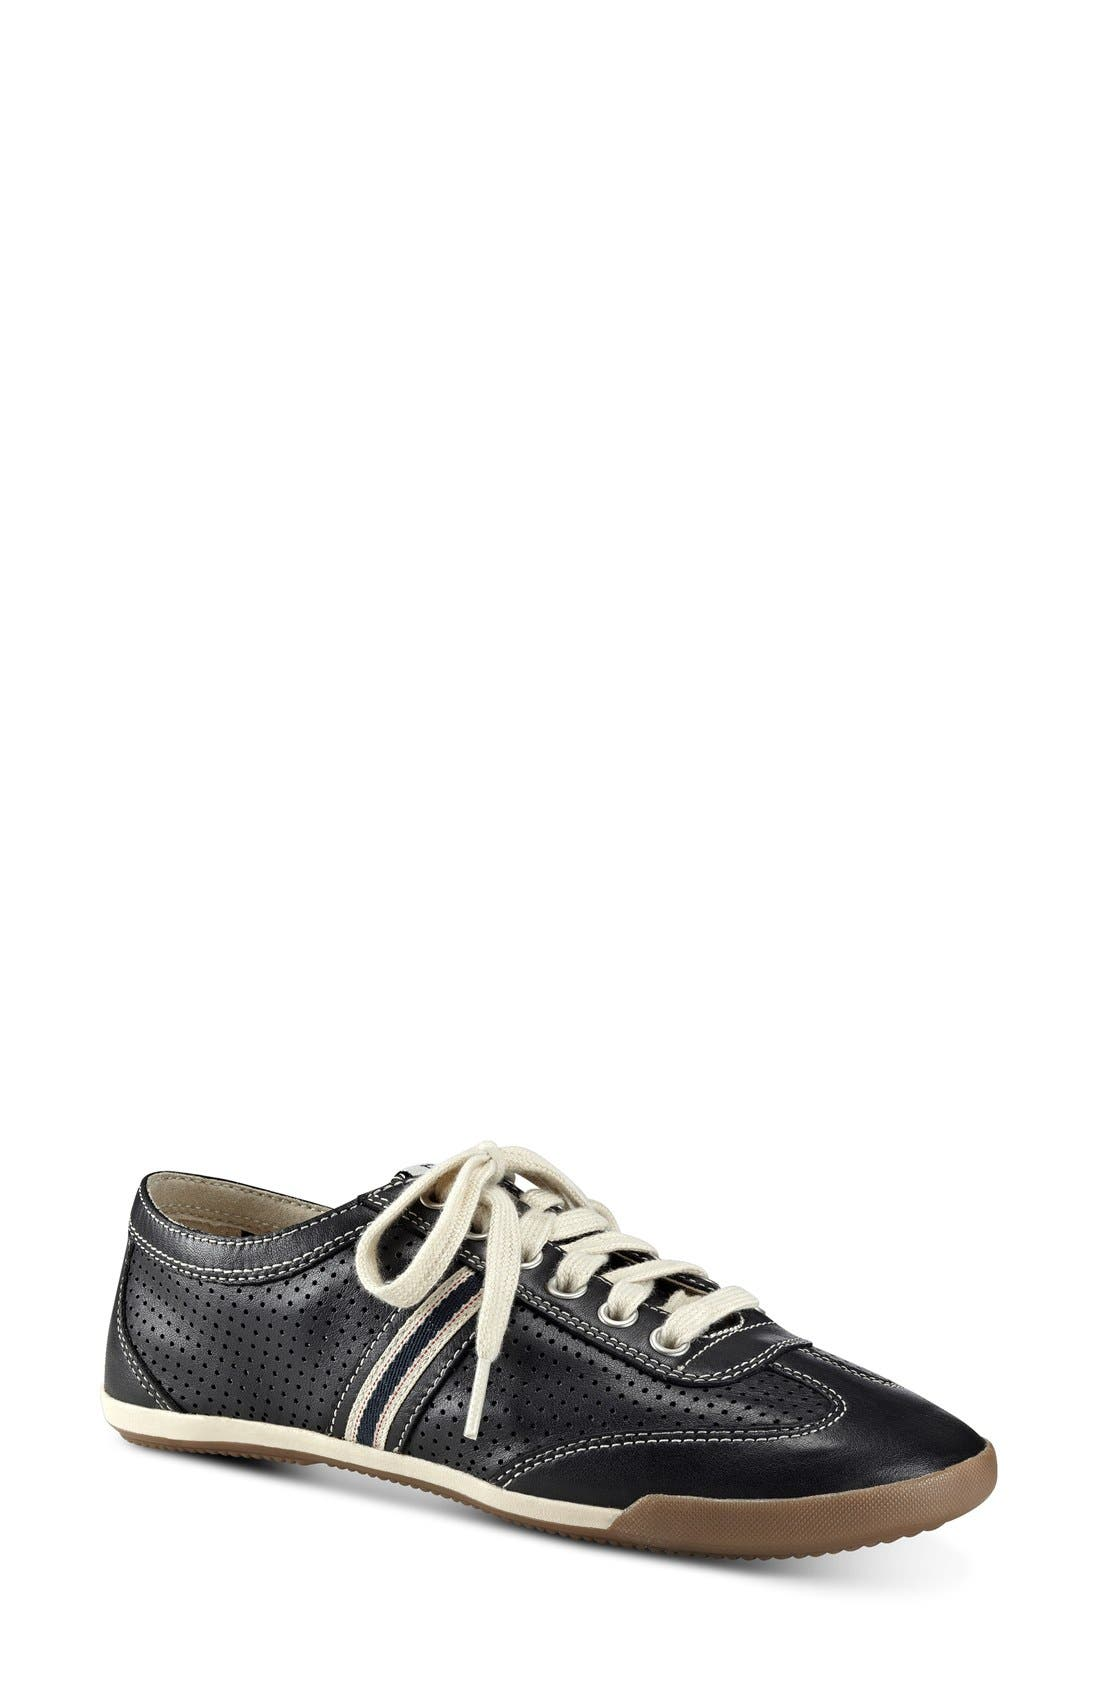 'Escondido' Sneaker,                             Main thumbnail 1, color,                             Black Leather